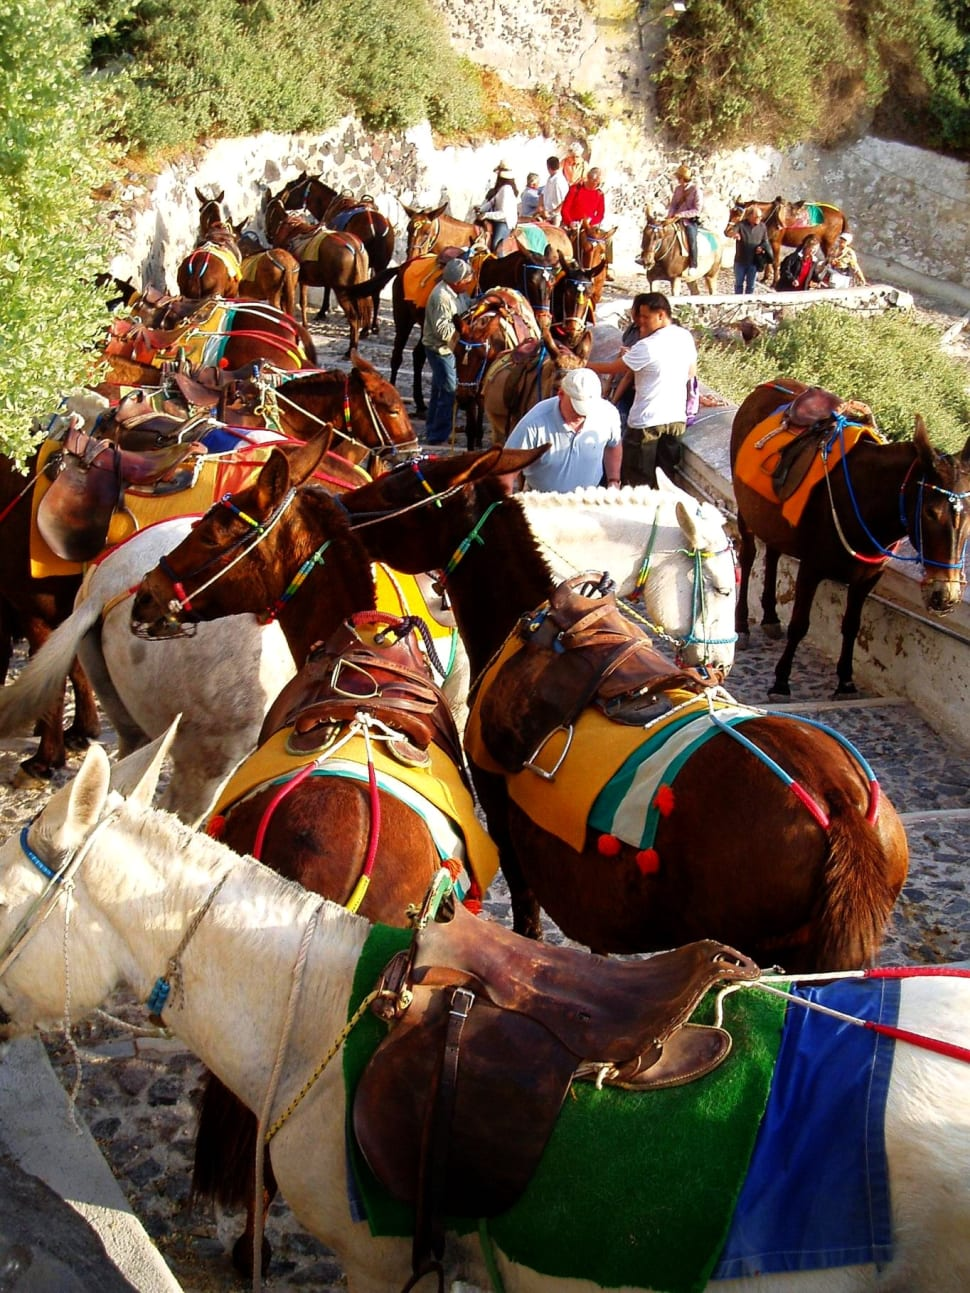 Donkey Ride in Santorini - Best Season